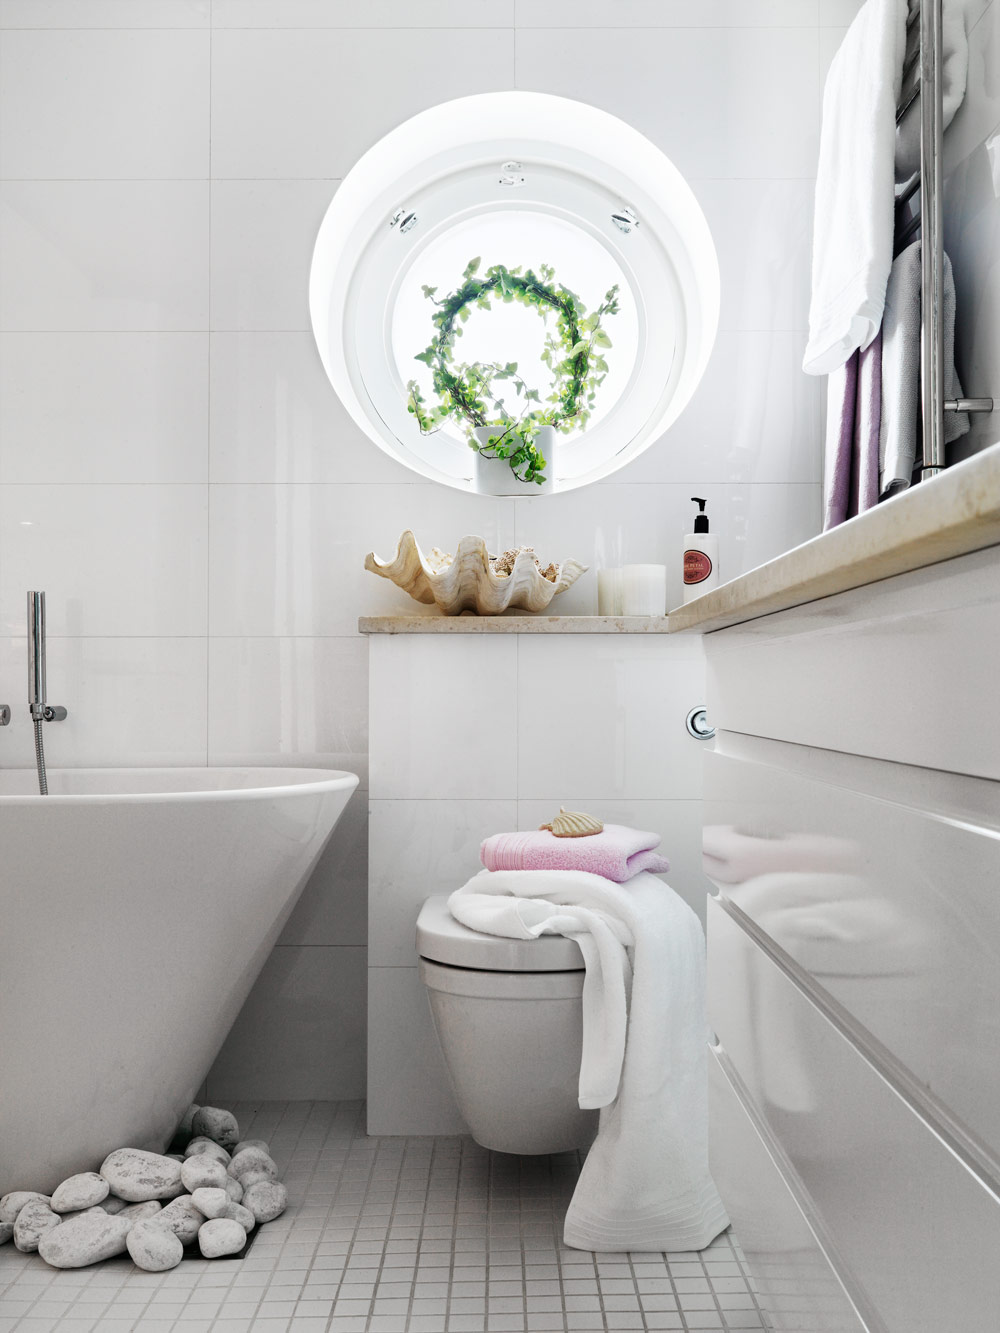 Http Www Digsdigs Com Stylish Small Bathroom With An Unusual Decor